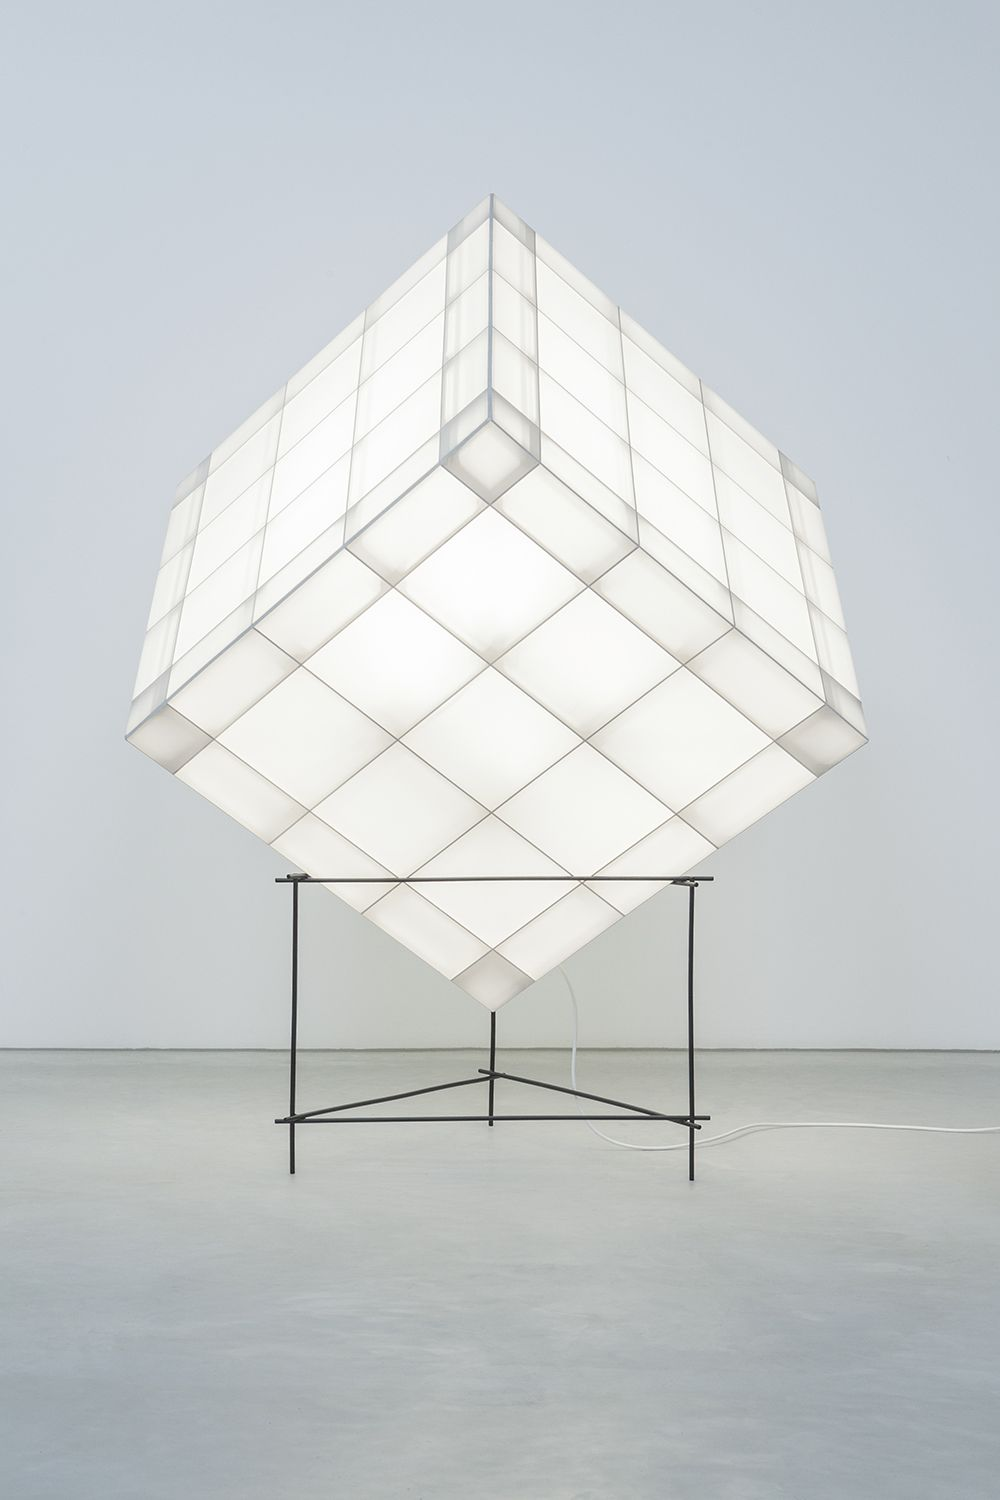 Studio mieke meijer | Lighting: space frames | ingenuity | Pinterest ...